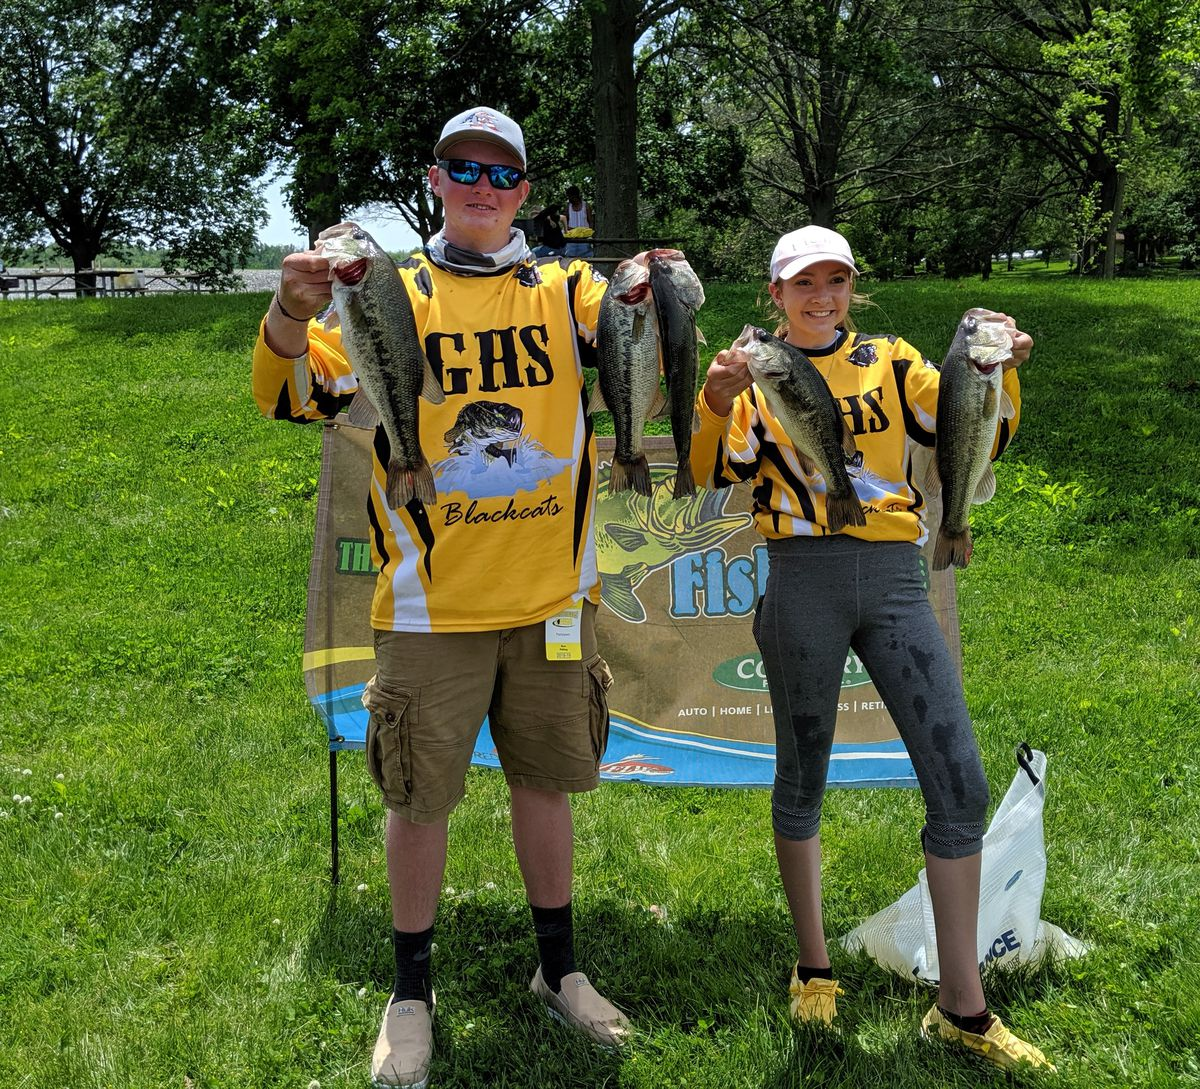 Goreville's Landon Albright and his sister Kaeden took second at the IHSA state finals for bass fishing in 2019. Kaeden, now a senior, and her sister Reice, who won the Lake of Egypt sectional, will be the other all-girl team at the state finals this year. Credit: Dale Bowman